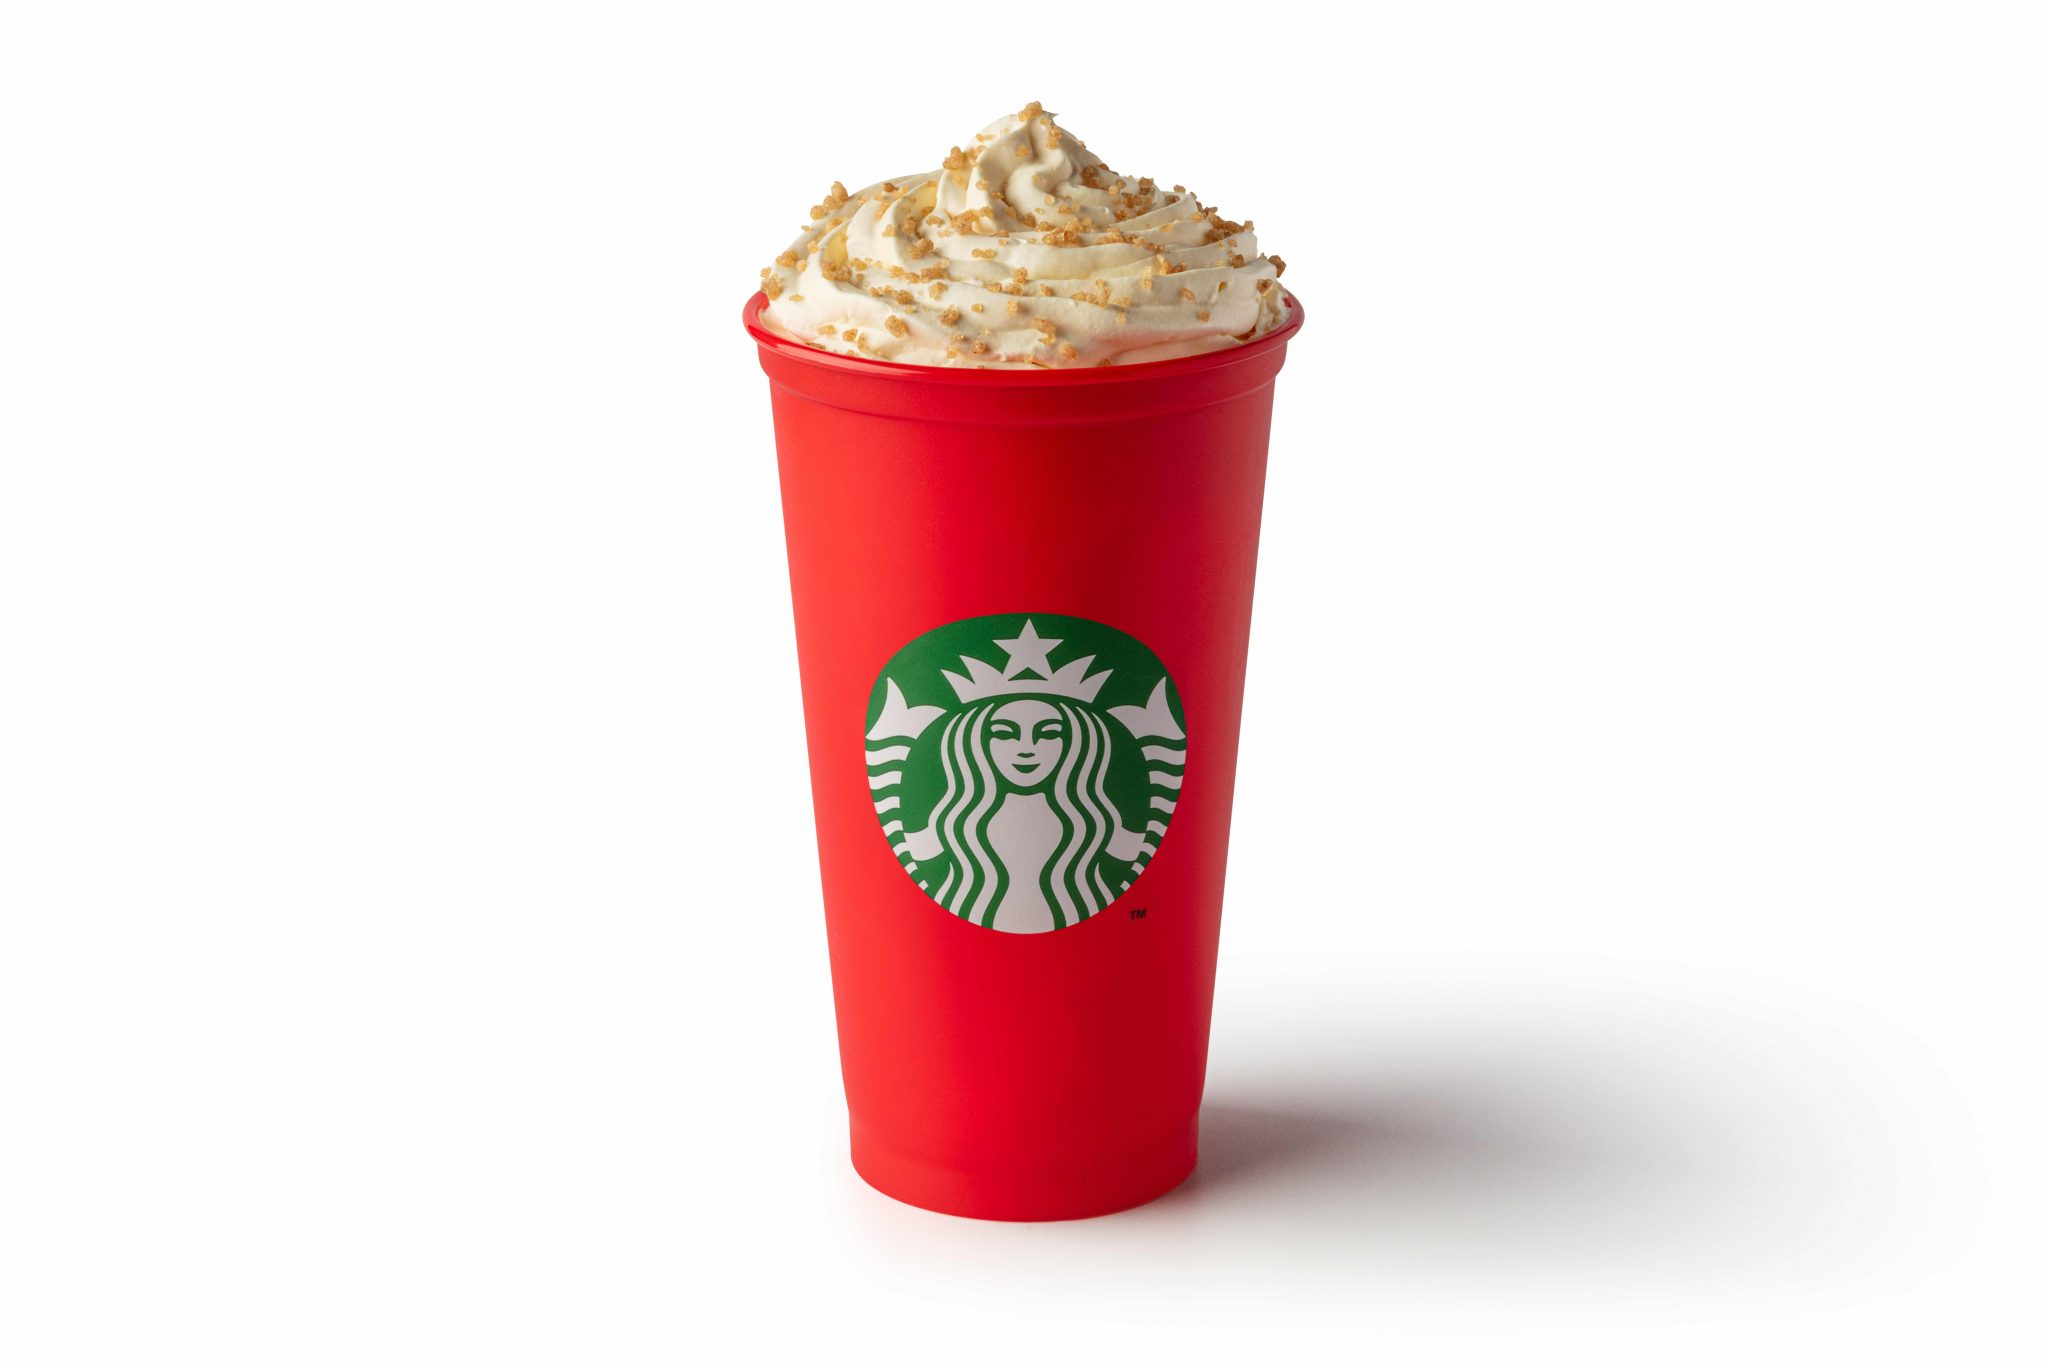 Toffee Nut Latte Reusable Cup